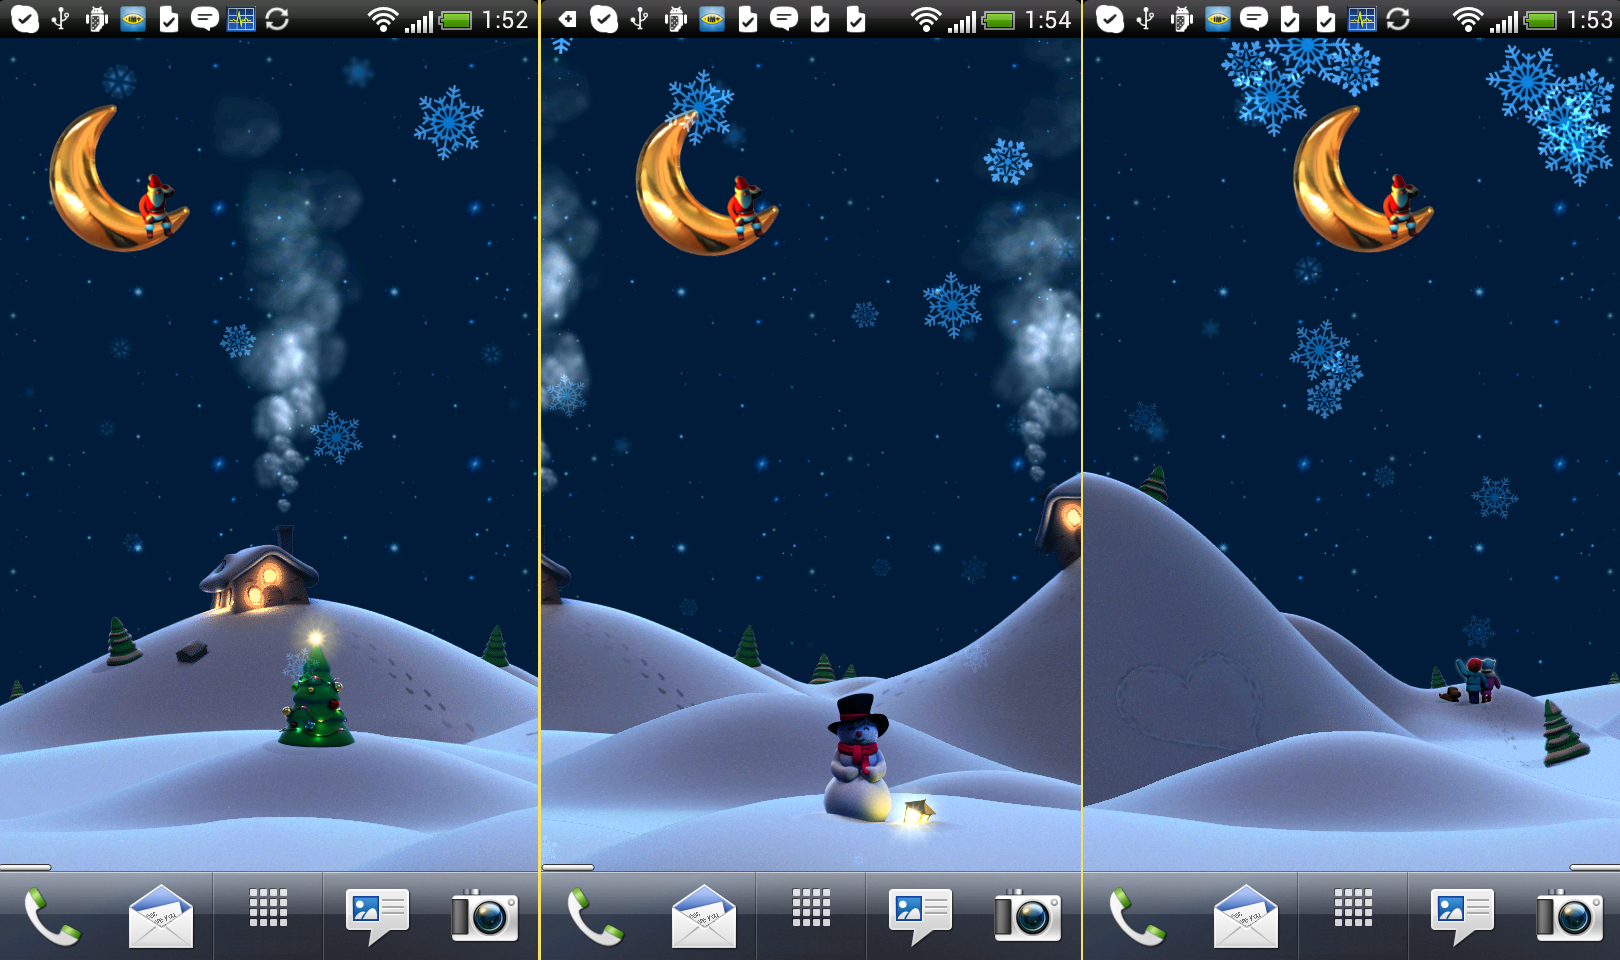 Our work for Android - Christmas Live Wallpaper